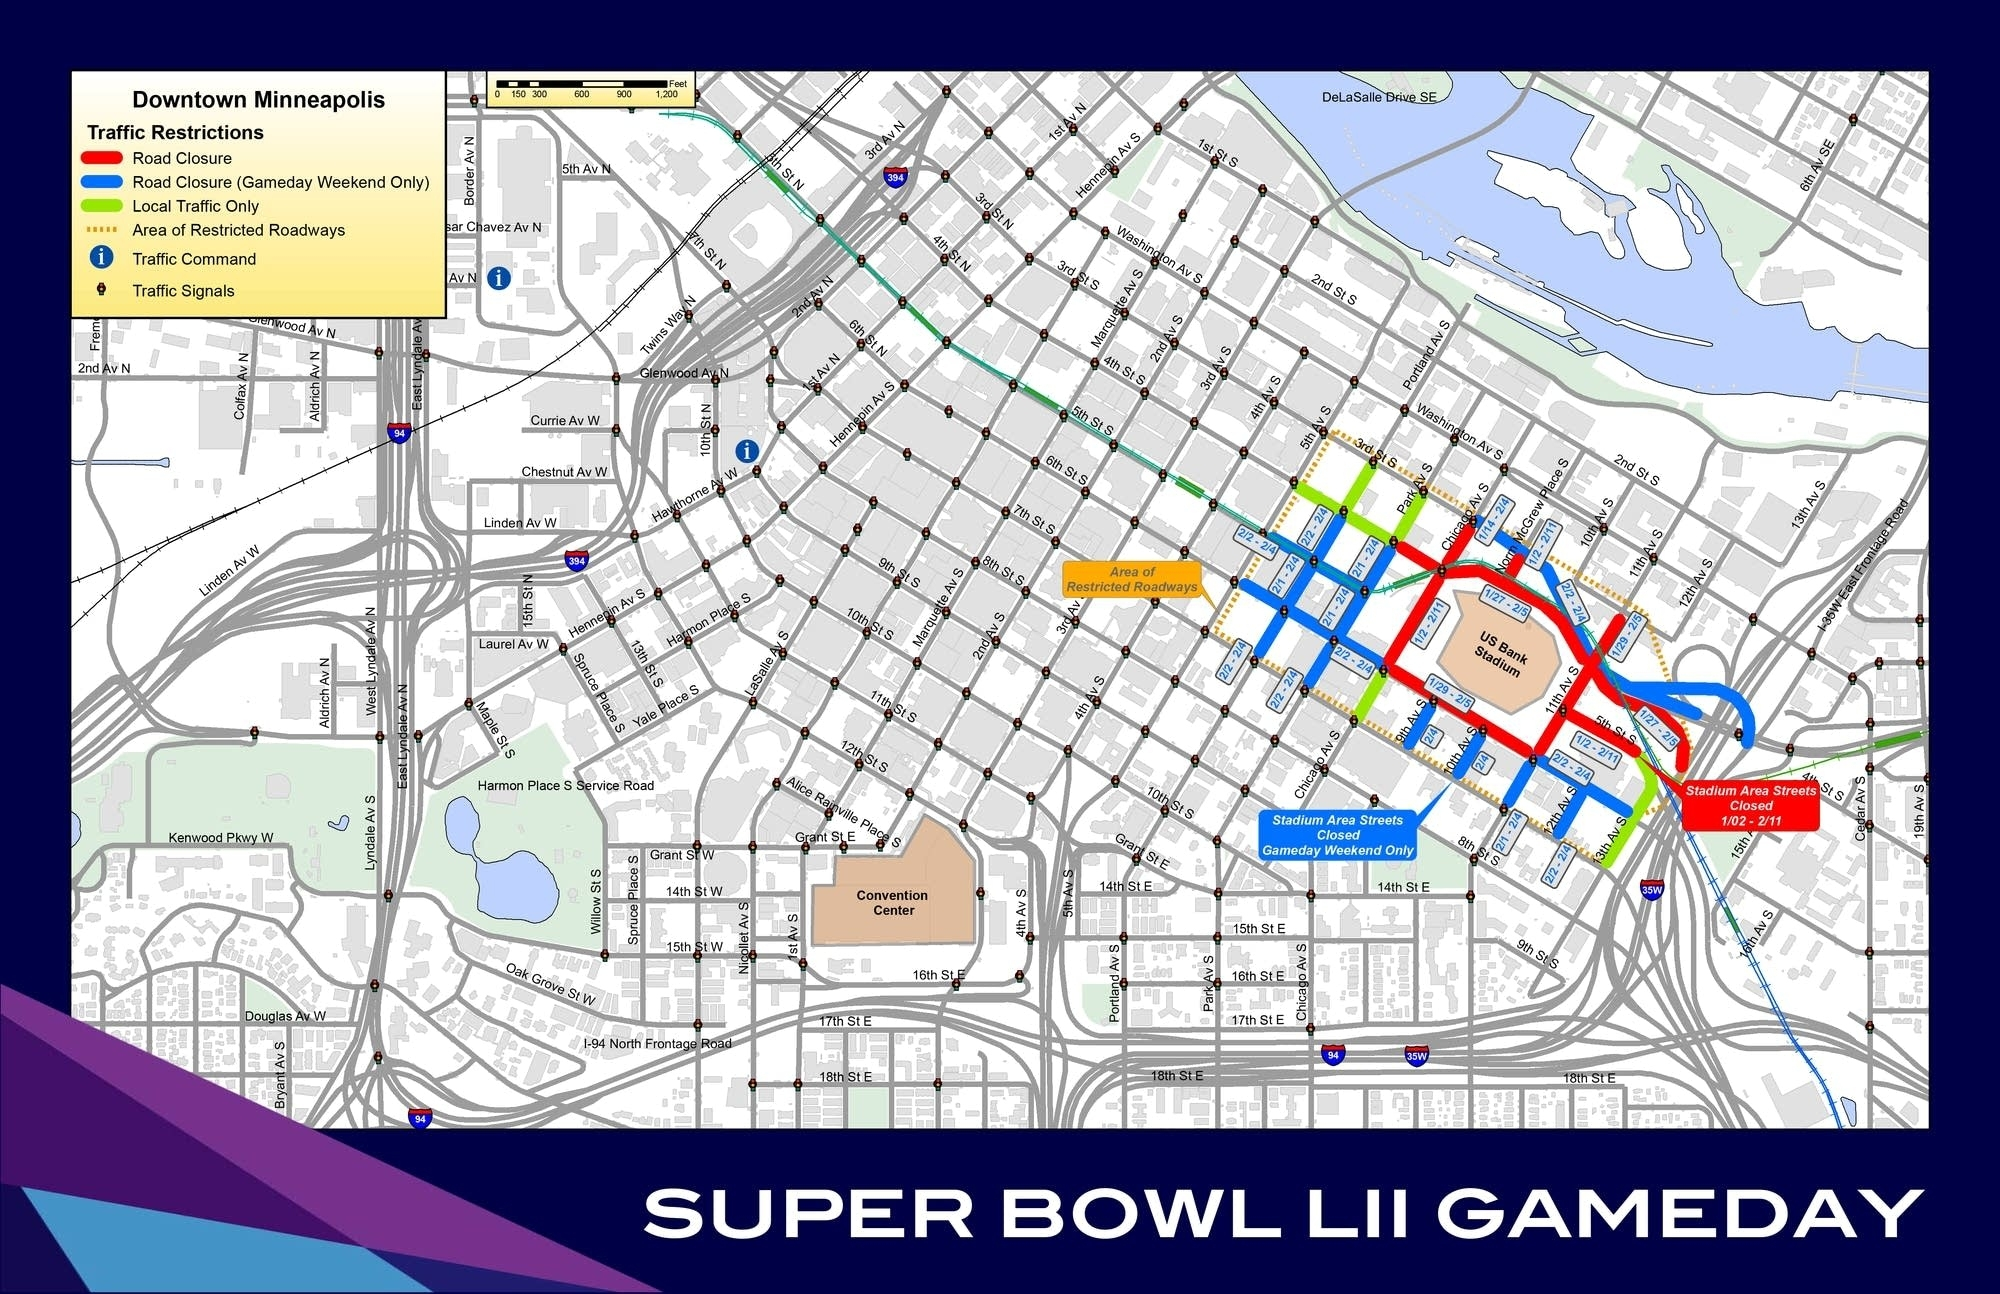 Metro Officials Release Road Closure, Transit Plans For within Super Bowl Road Closures Map